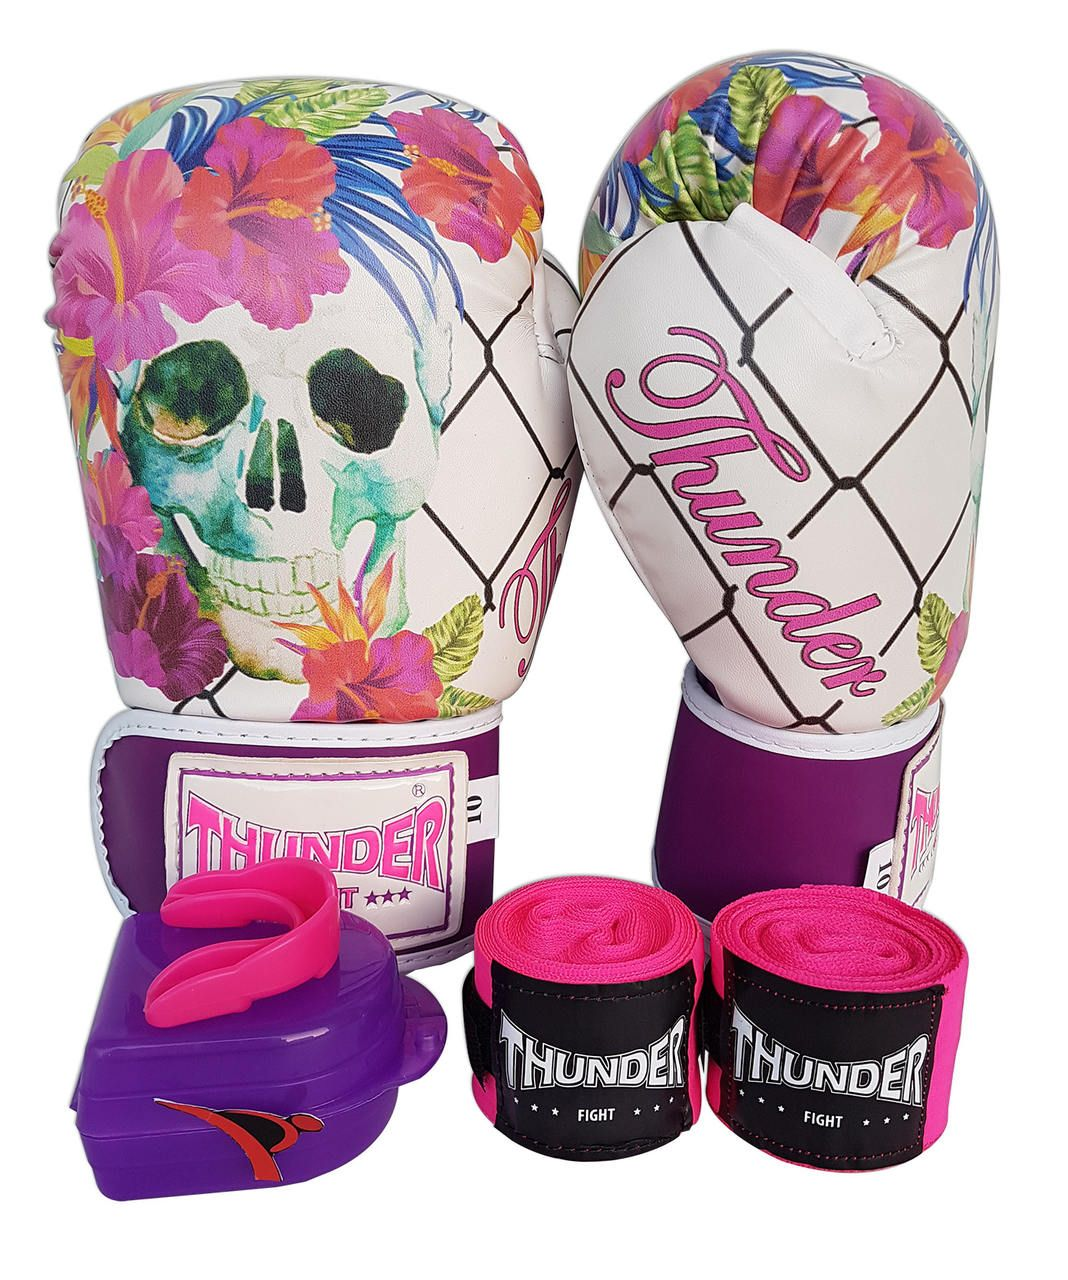 Kit de Boxe / Muay Thai Feminino 12oz - Caveira Grade - Thunder Fight   - PRALUTA SHOP